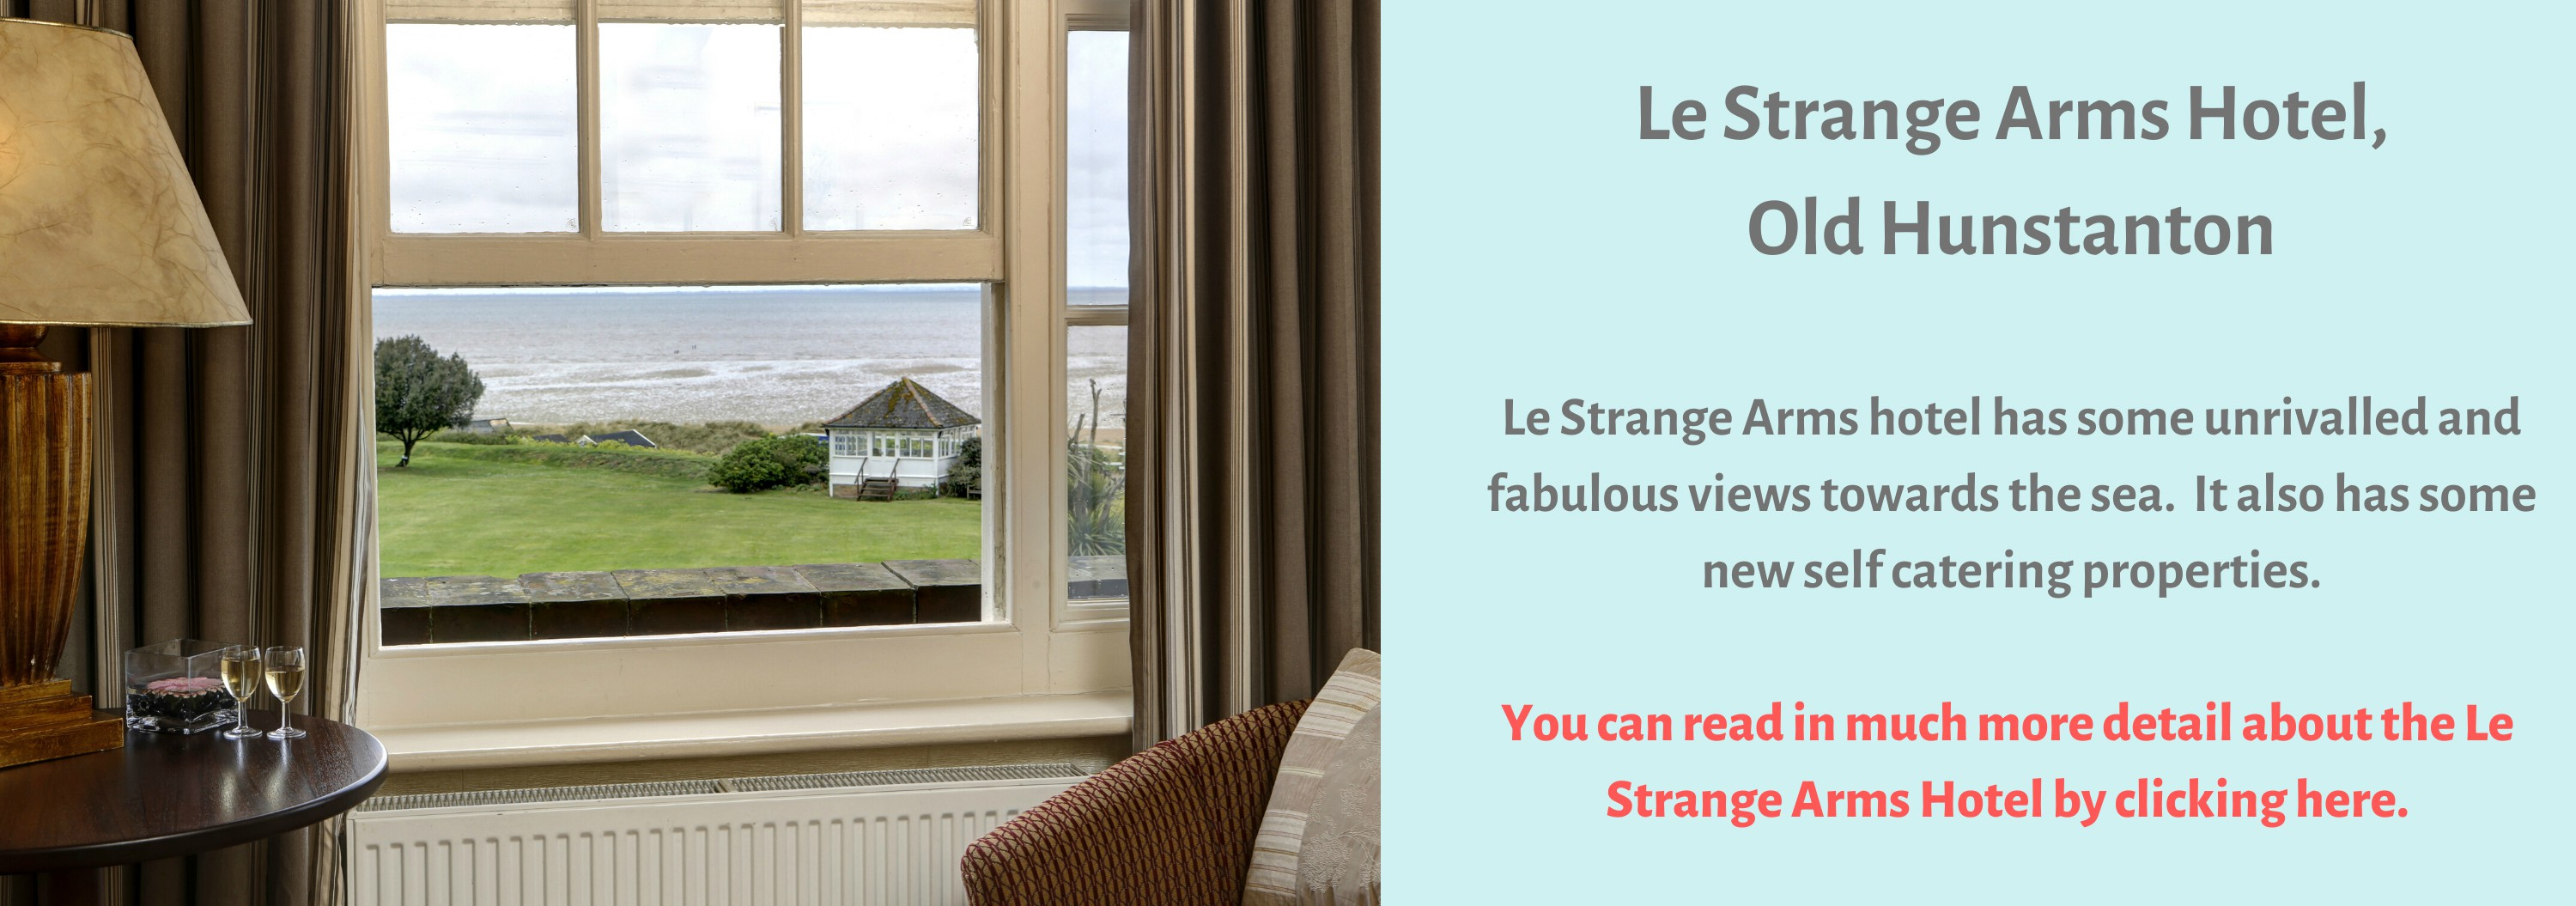 Le Strange Arms Hotel with sea views